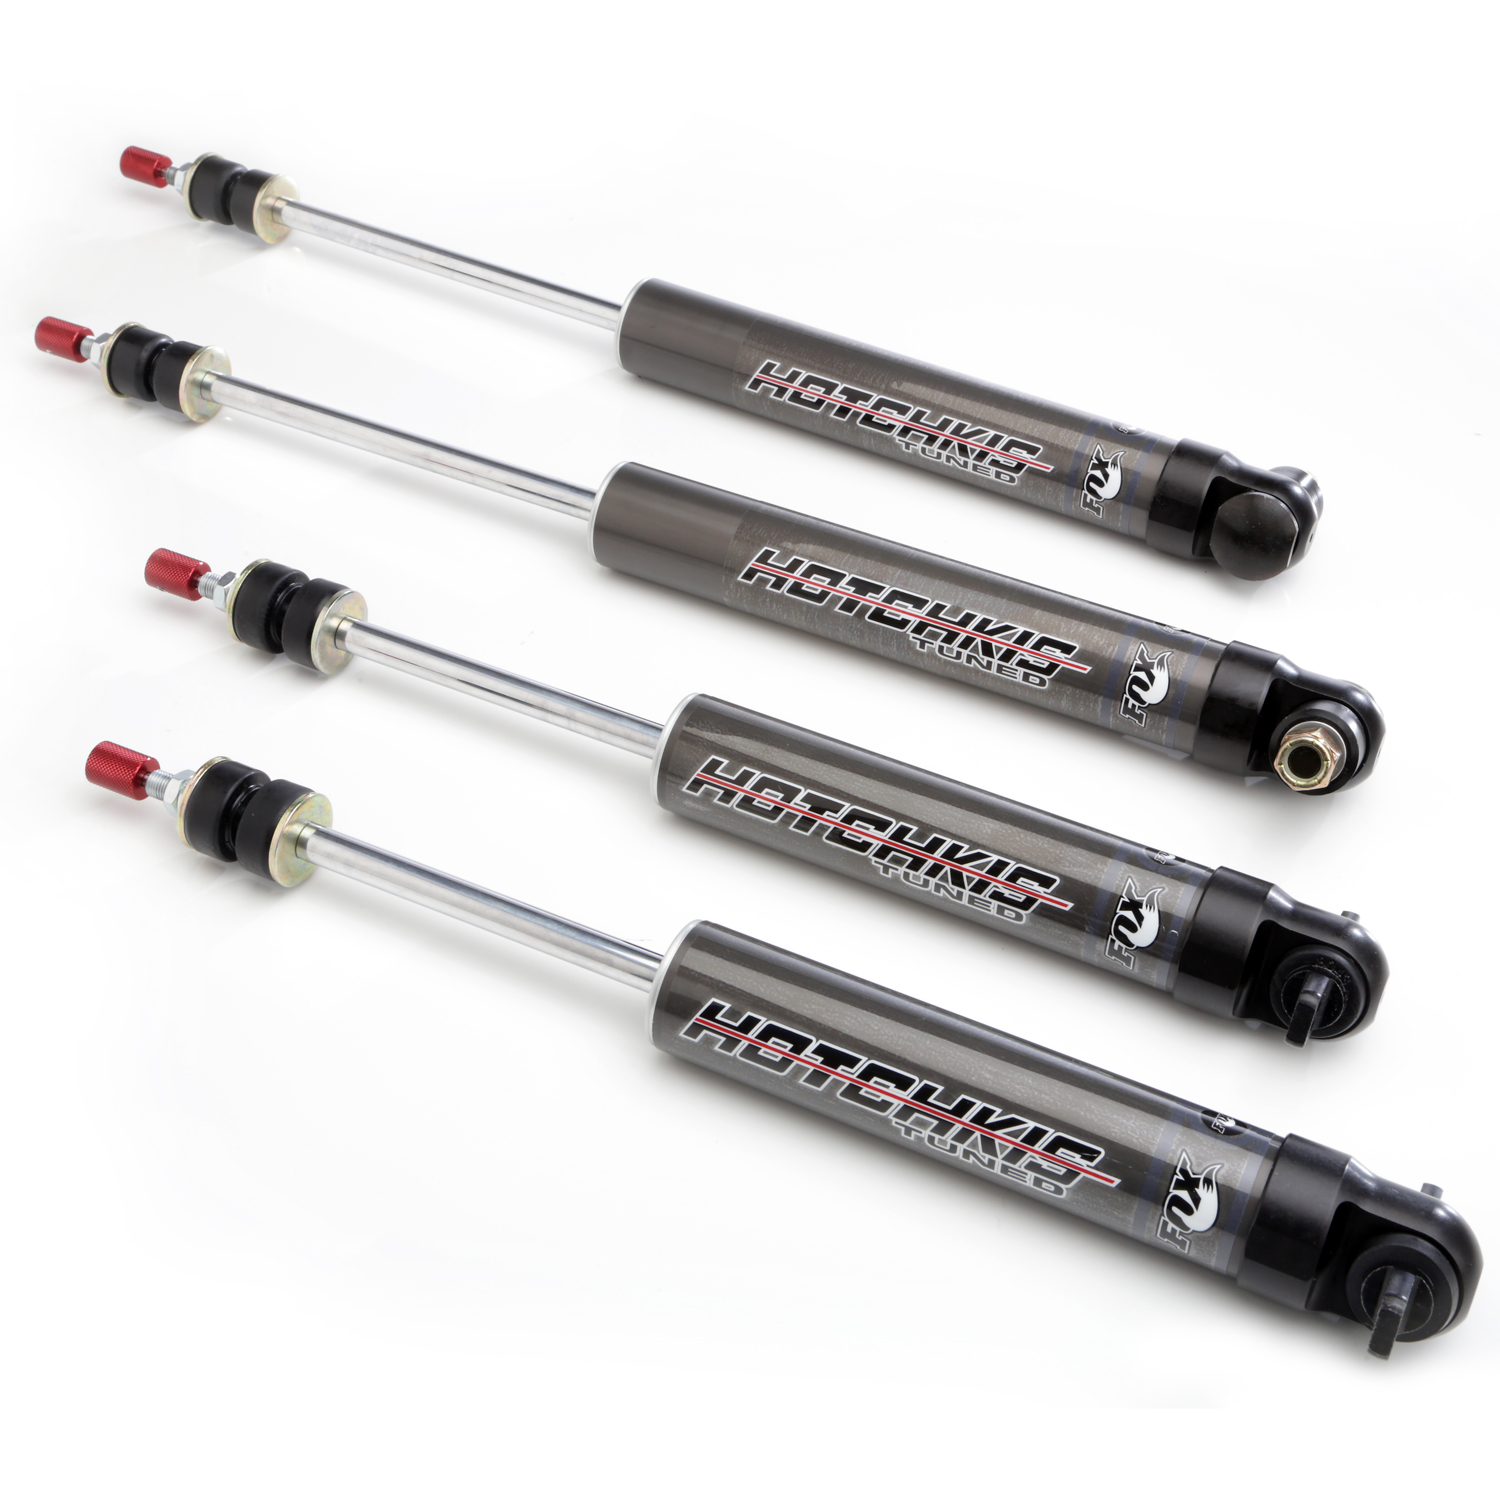 Hotchkis Tuned  1.5 Adjustable Performance Series Shock 4 Pack  67-69 GM F-Body